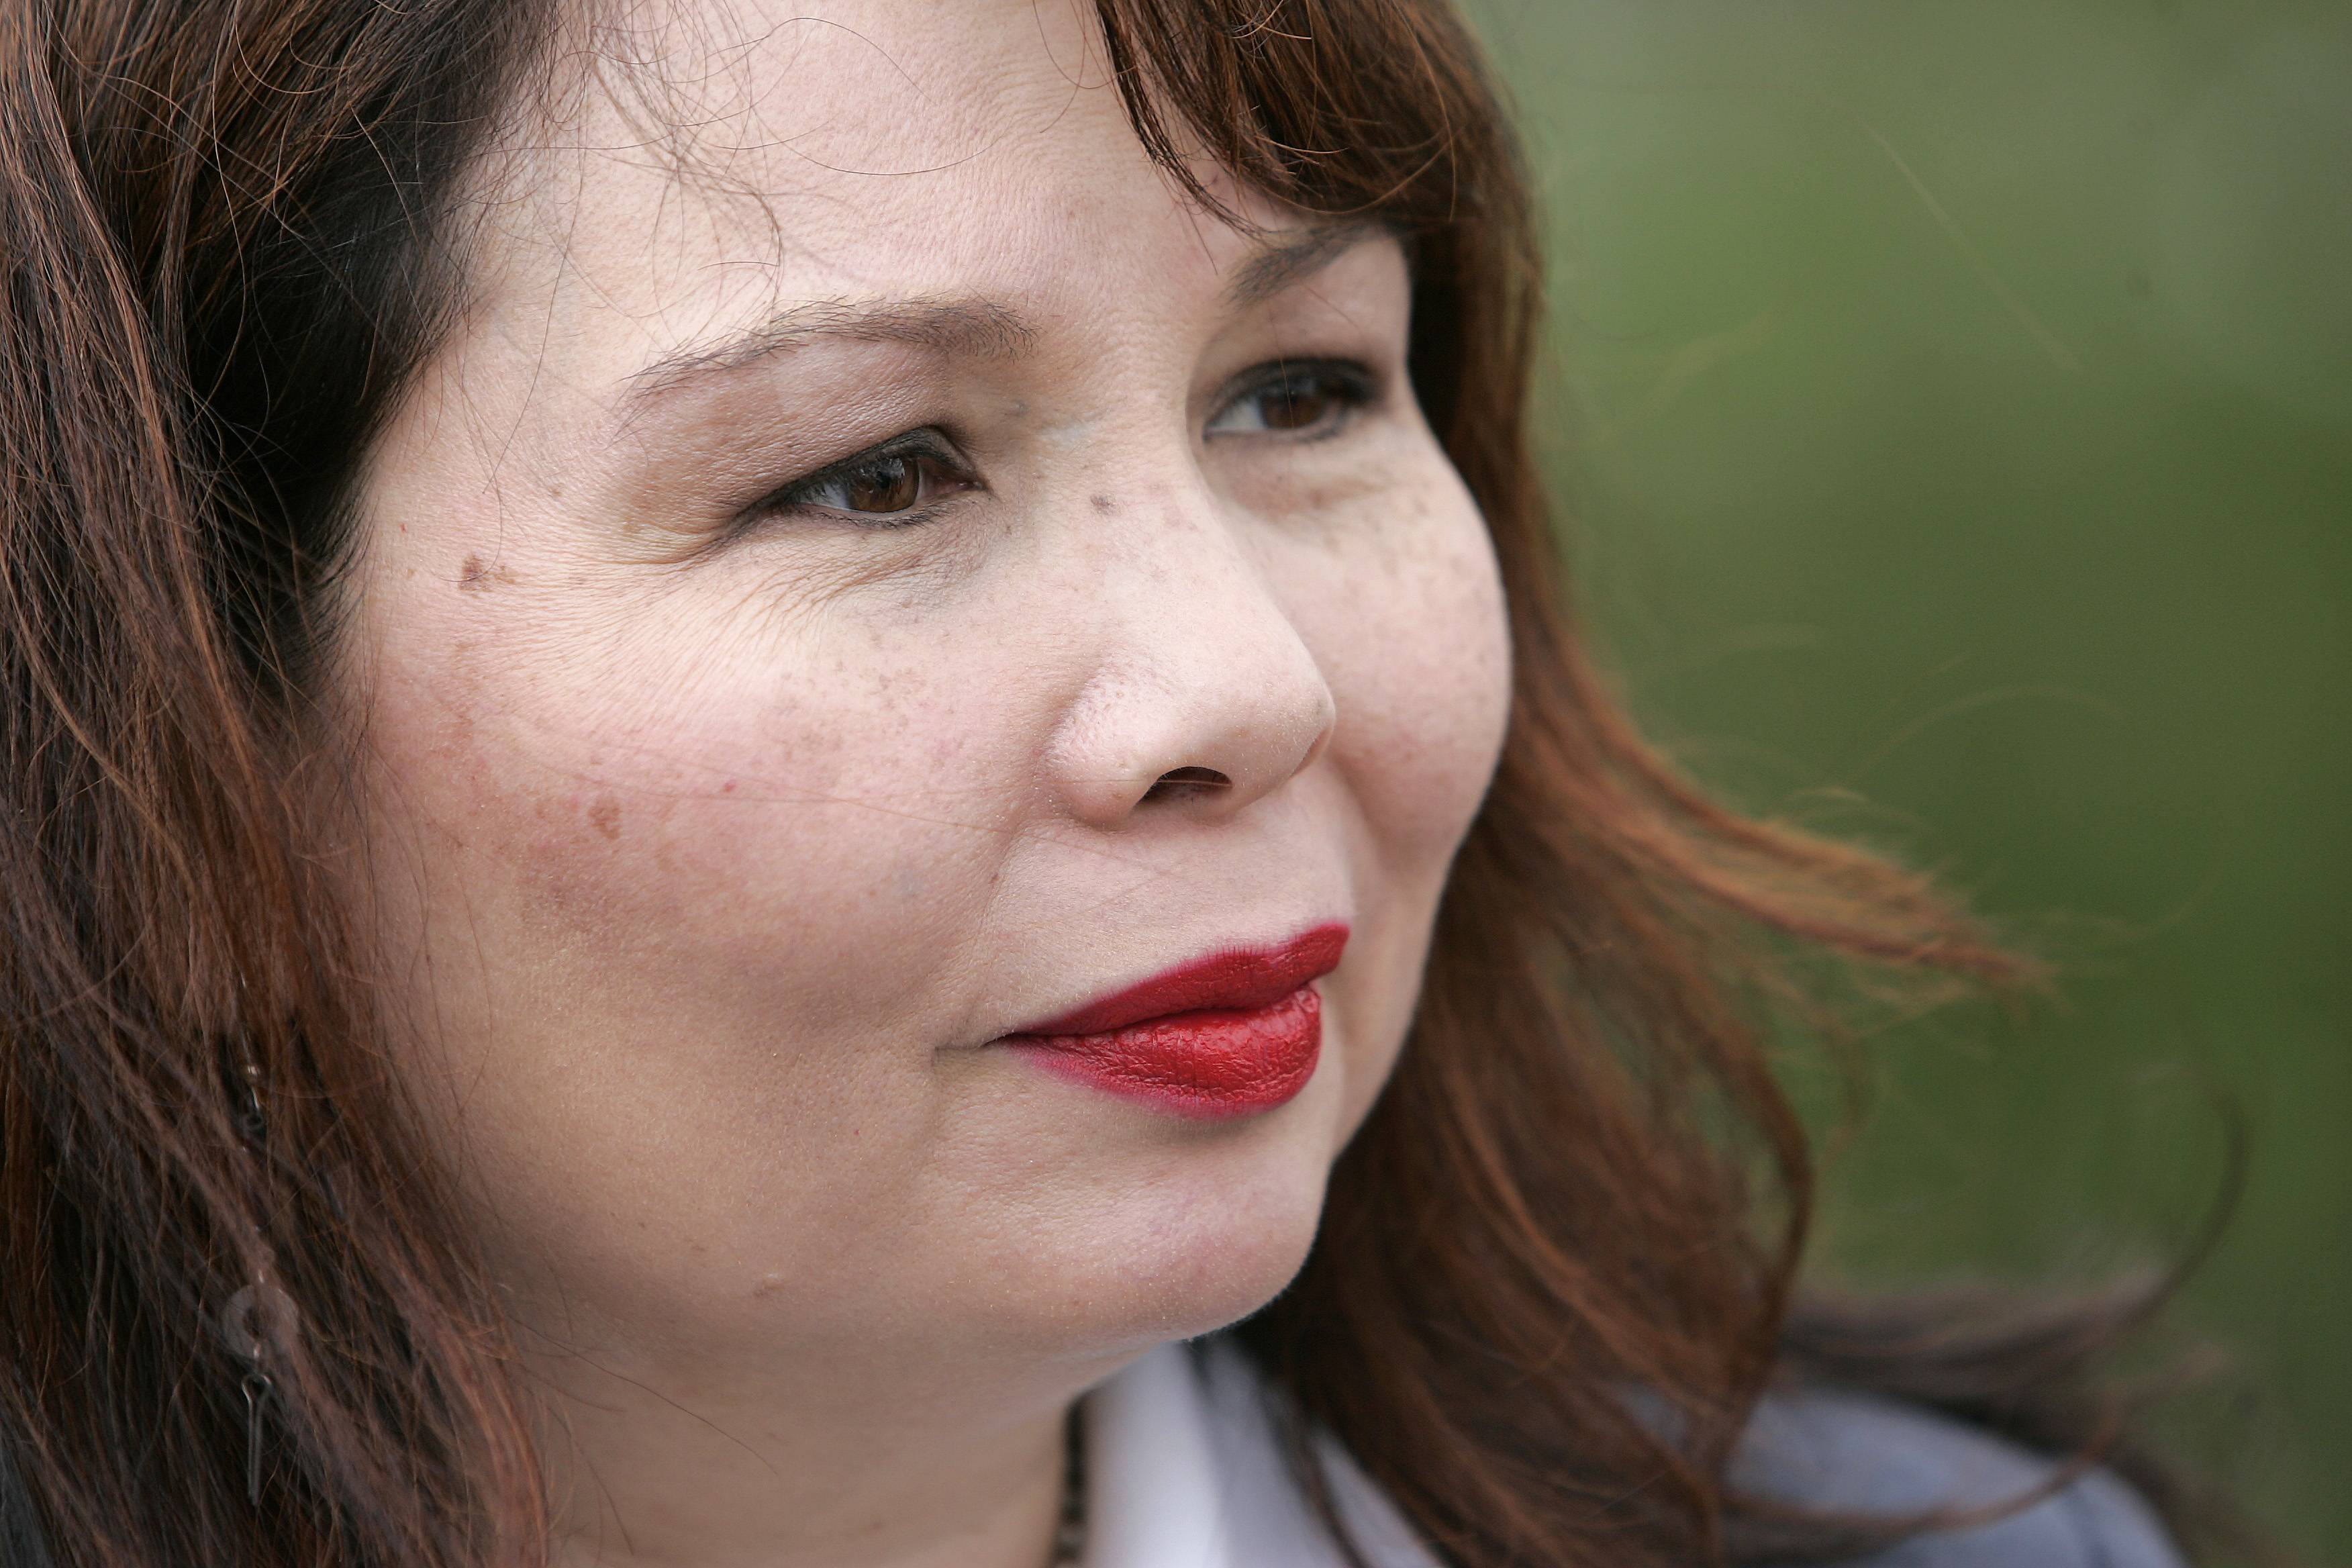 U.S. Rep. Tammy Duckworth talks Thursday about the need to replace a bridge that carries the Milwaukee West Line over the Fox River in Elgin. Metra has applied for $17 million in federal funding to help replace the single-track bridge.